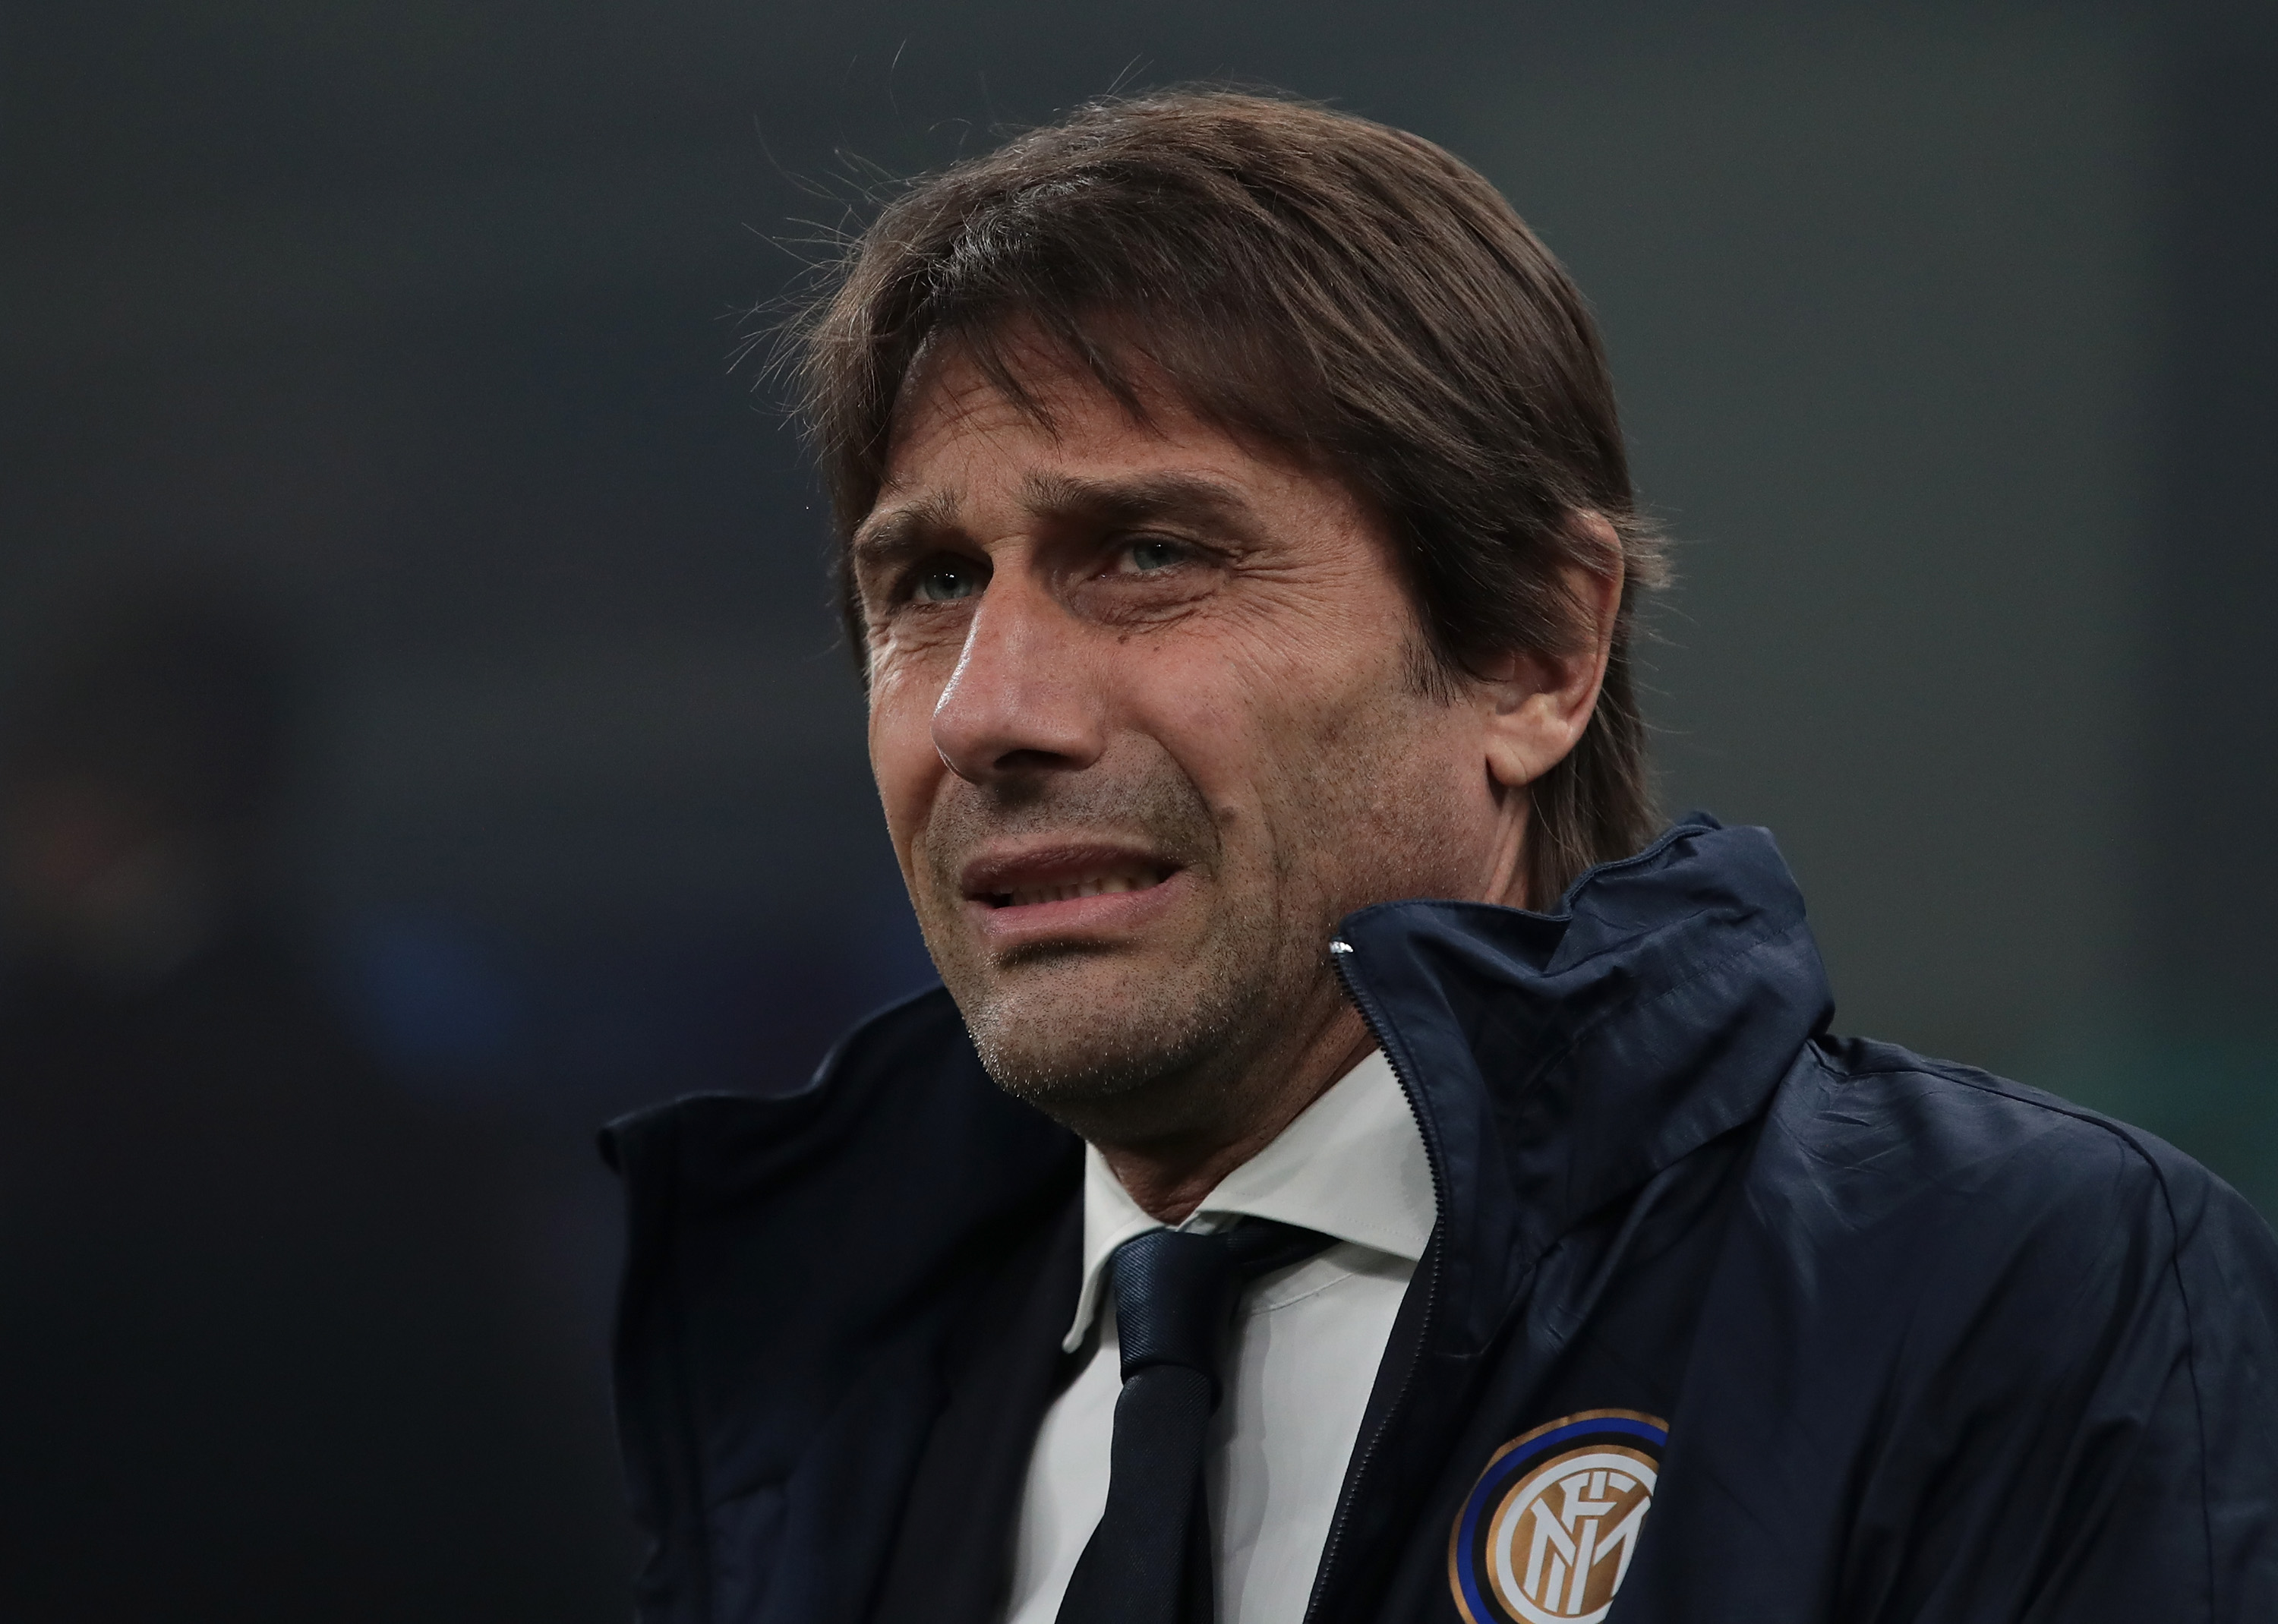 Conte has a couple of injury concerns ahead of Tuesday's game (Photo by Emilio Andreoli/Getty Images)